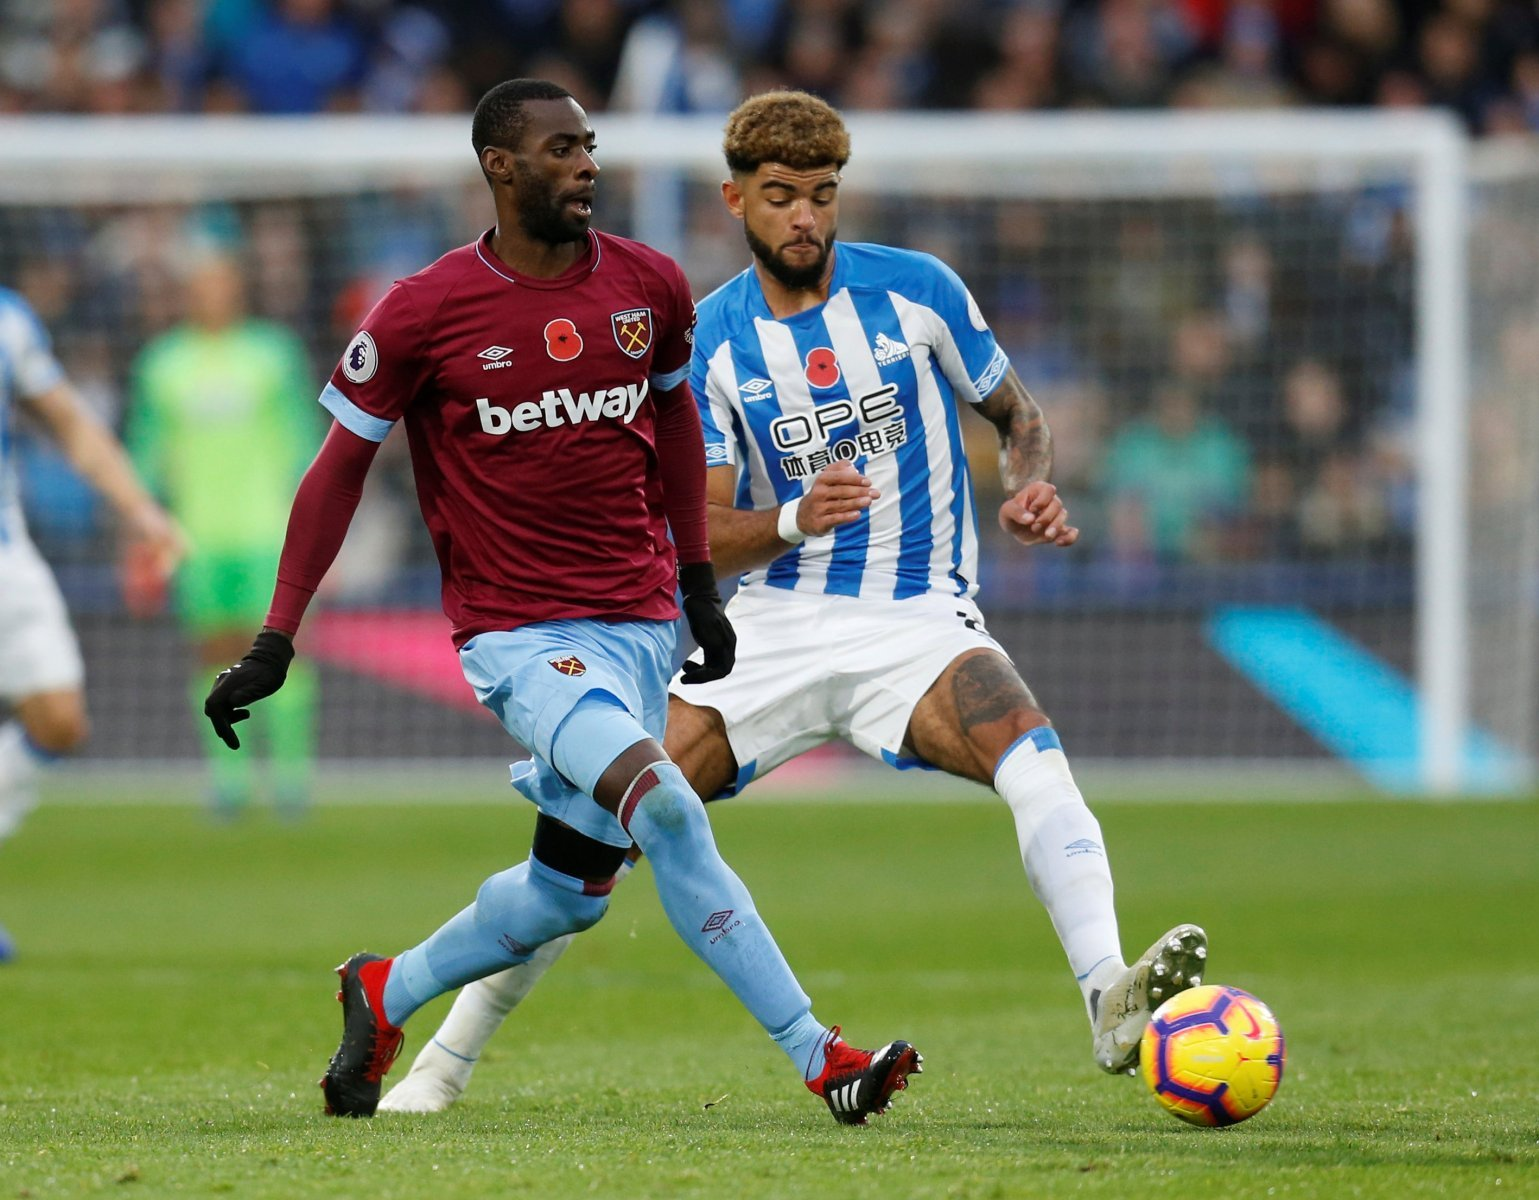 Dharmesh Sheth reveals Fiorentina and Lille both have offers on table for Pedro Obiang